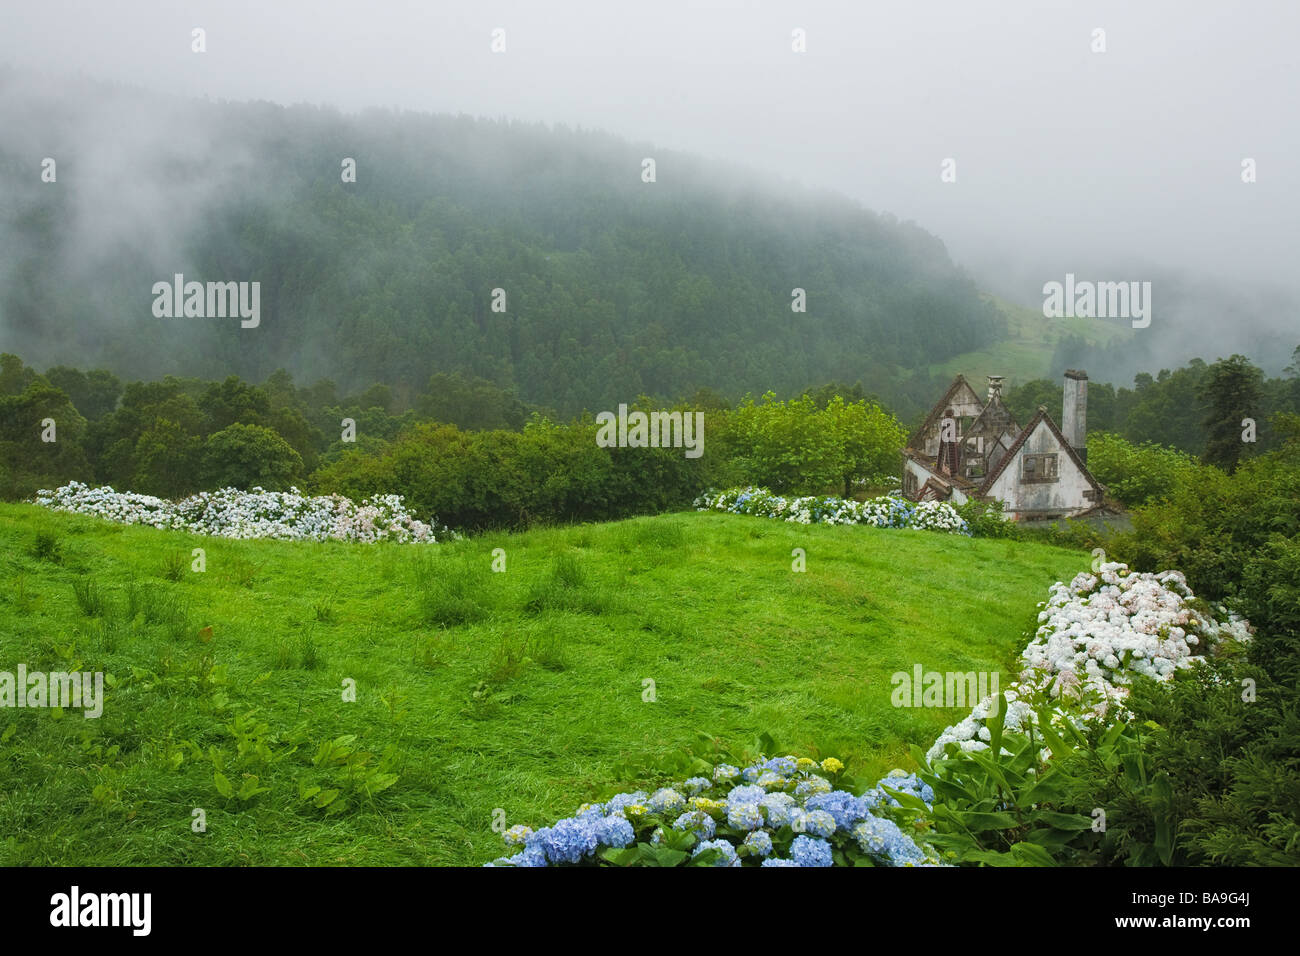 View over old and abandon house with mist on the forest of Sao Miguel island, azores, Portugal - Stock Image